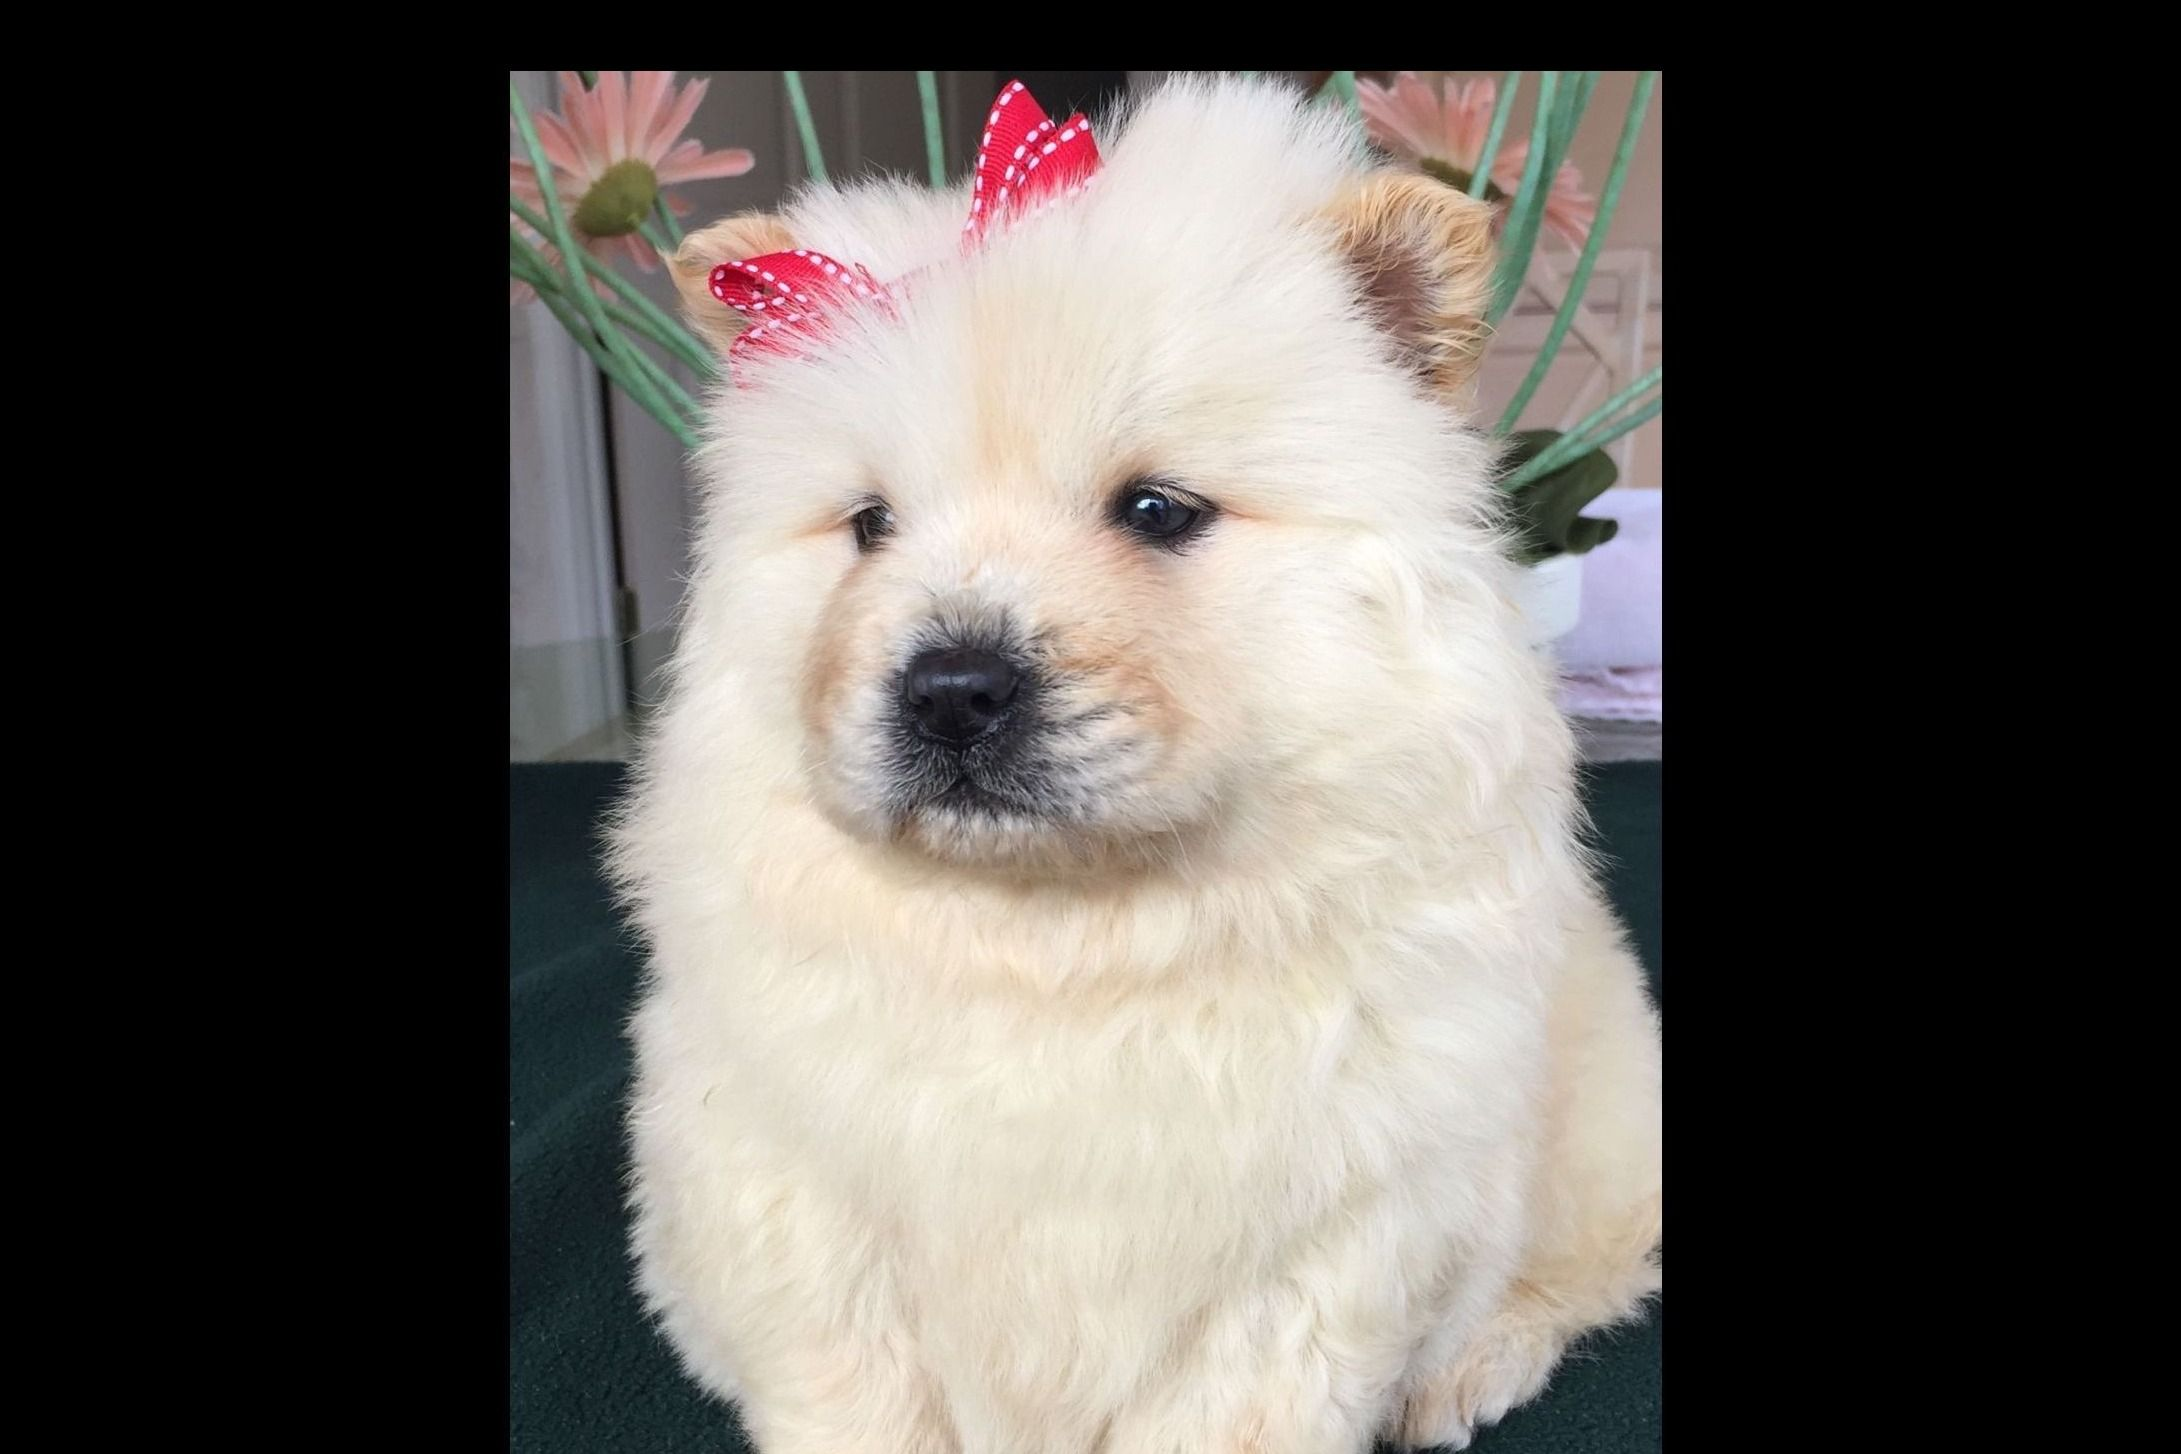 GERI McGHEE KENNELS 903-262-6654 - Chow Chow Puppies For